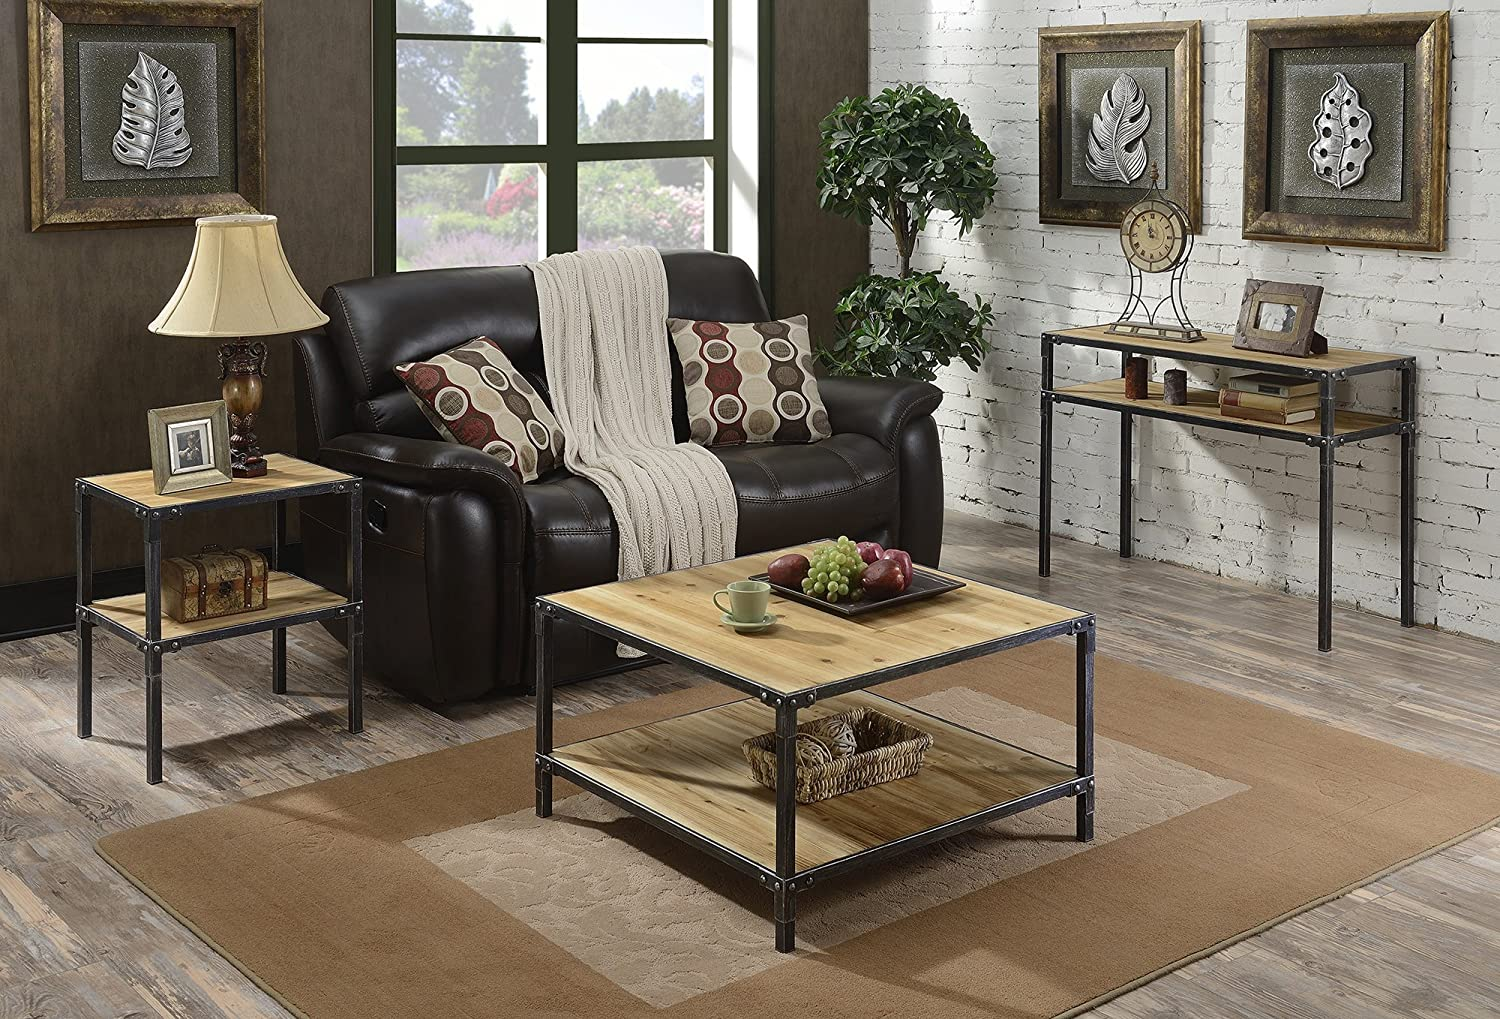 Convenience Concepts Laredo 2-Tier Console Table Natural and Black